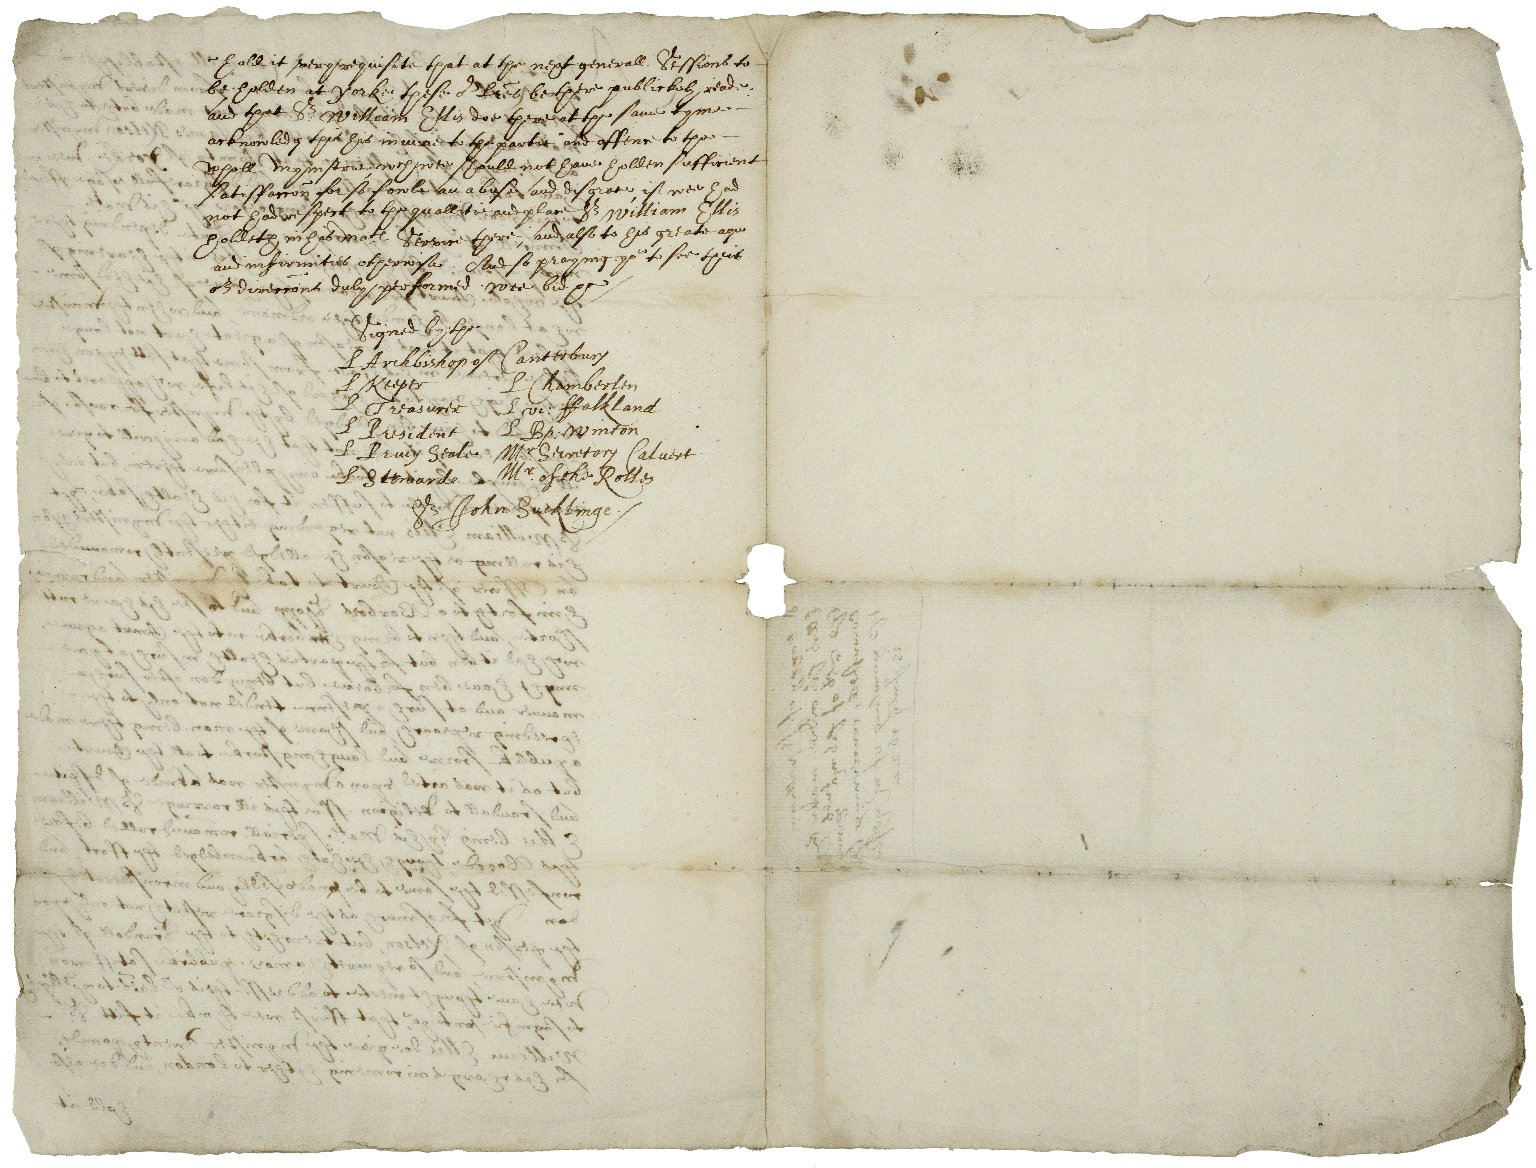 """Copy of a Privy Council order to Sir William Ellis, member of the King's Council at York, July 15, 1622, ordering him to a barber because he wore """"the haire of his head some what longer behinde..."""